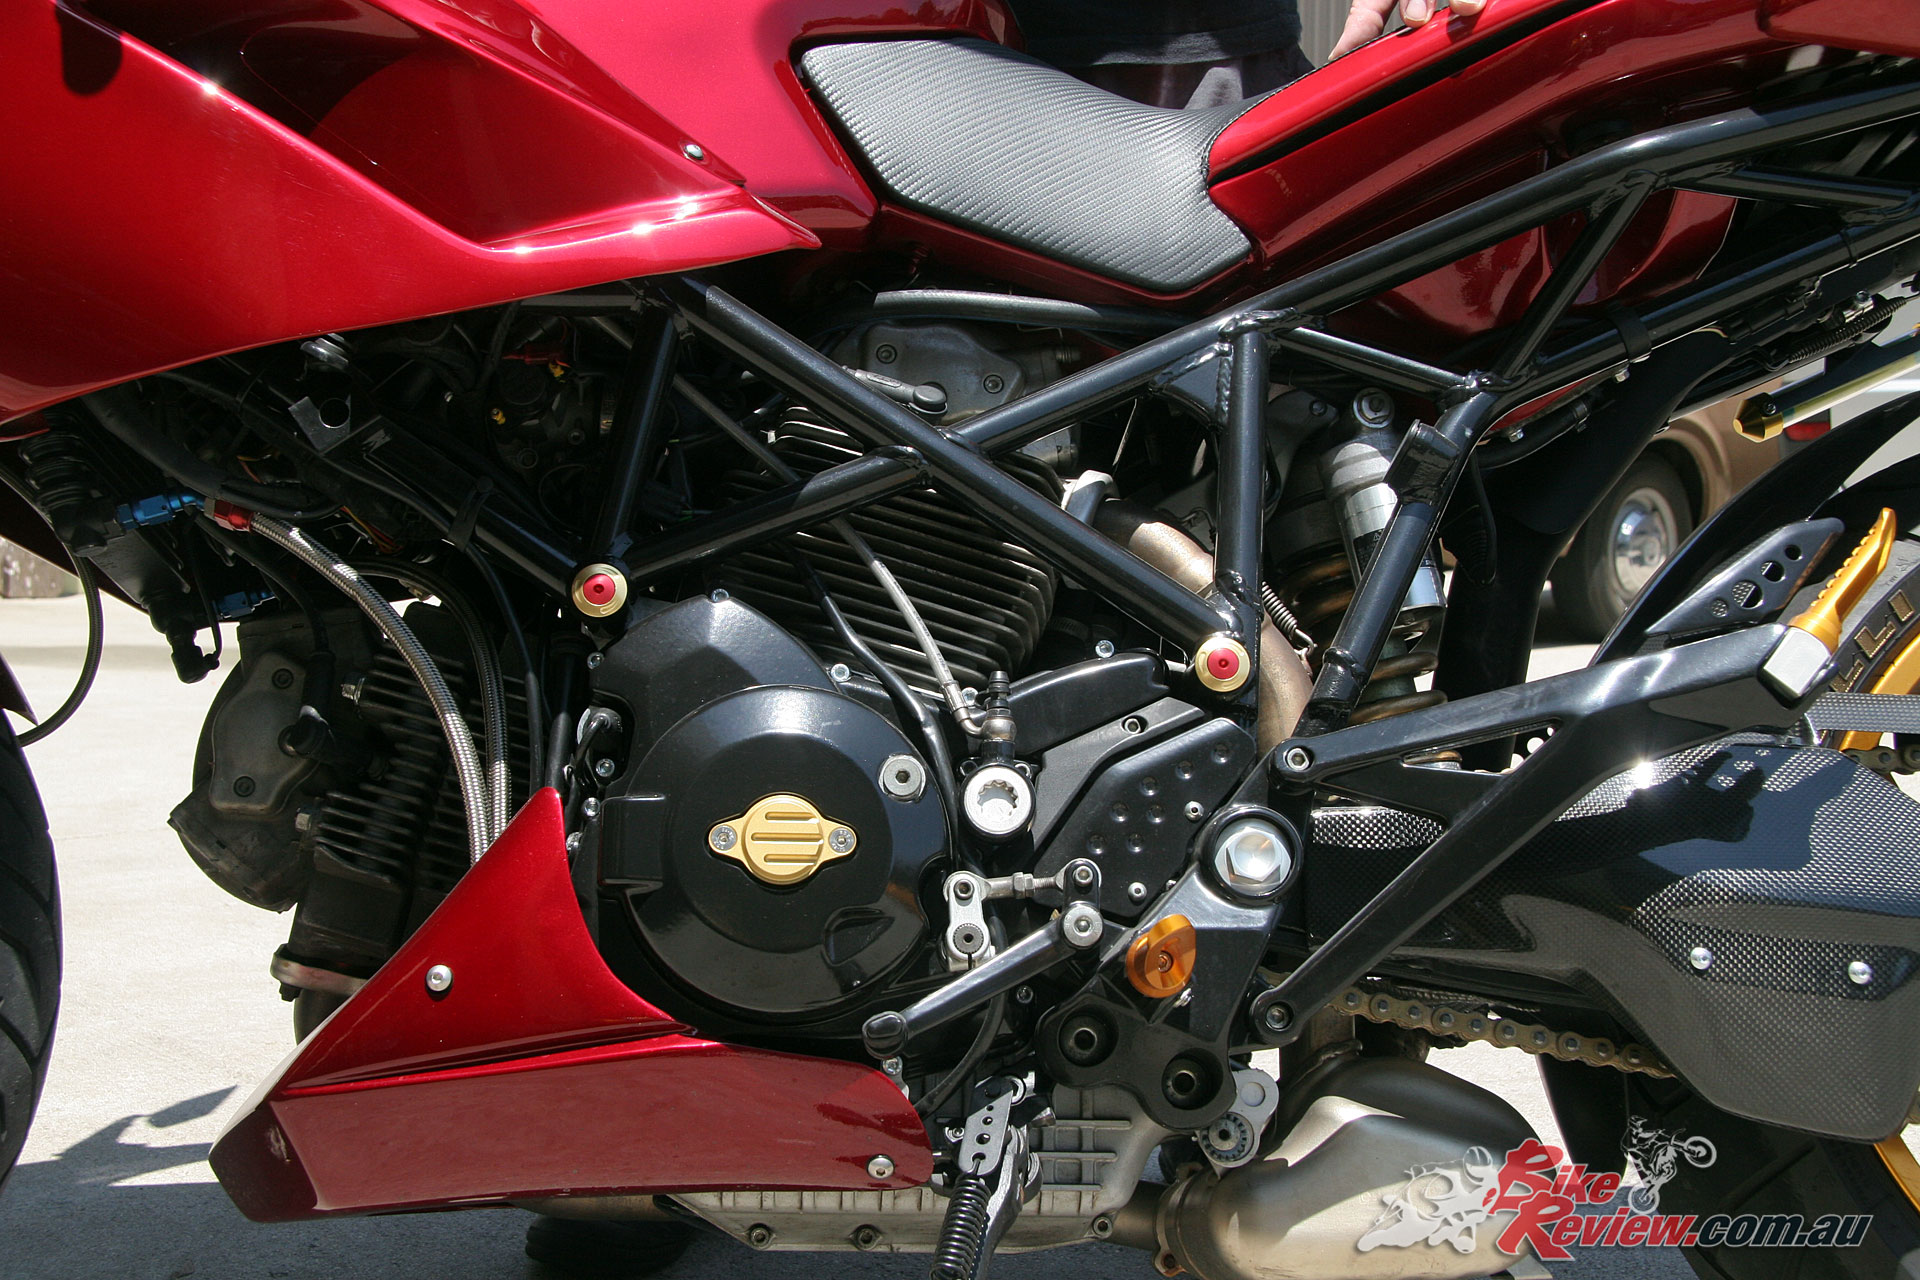 The standard two-valve 2004 Multistrada powerplant benefits from a Power Commander and aftermarket exhaust